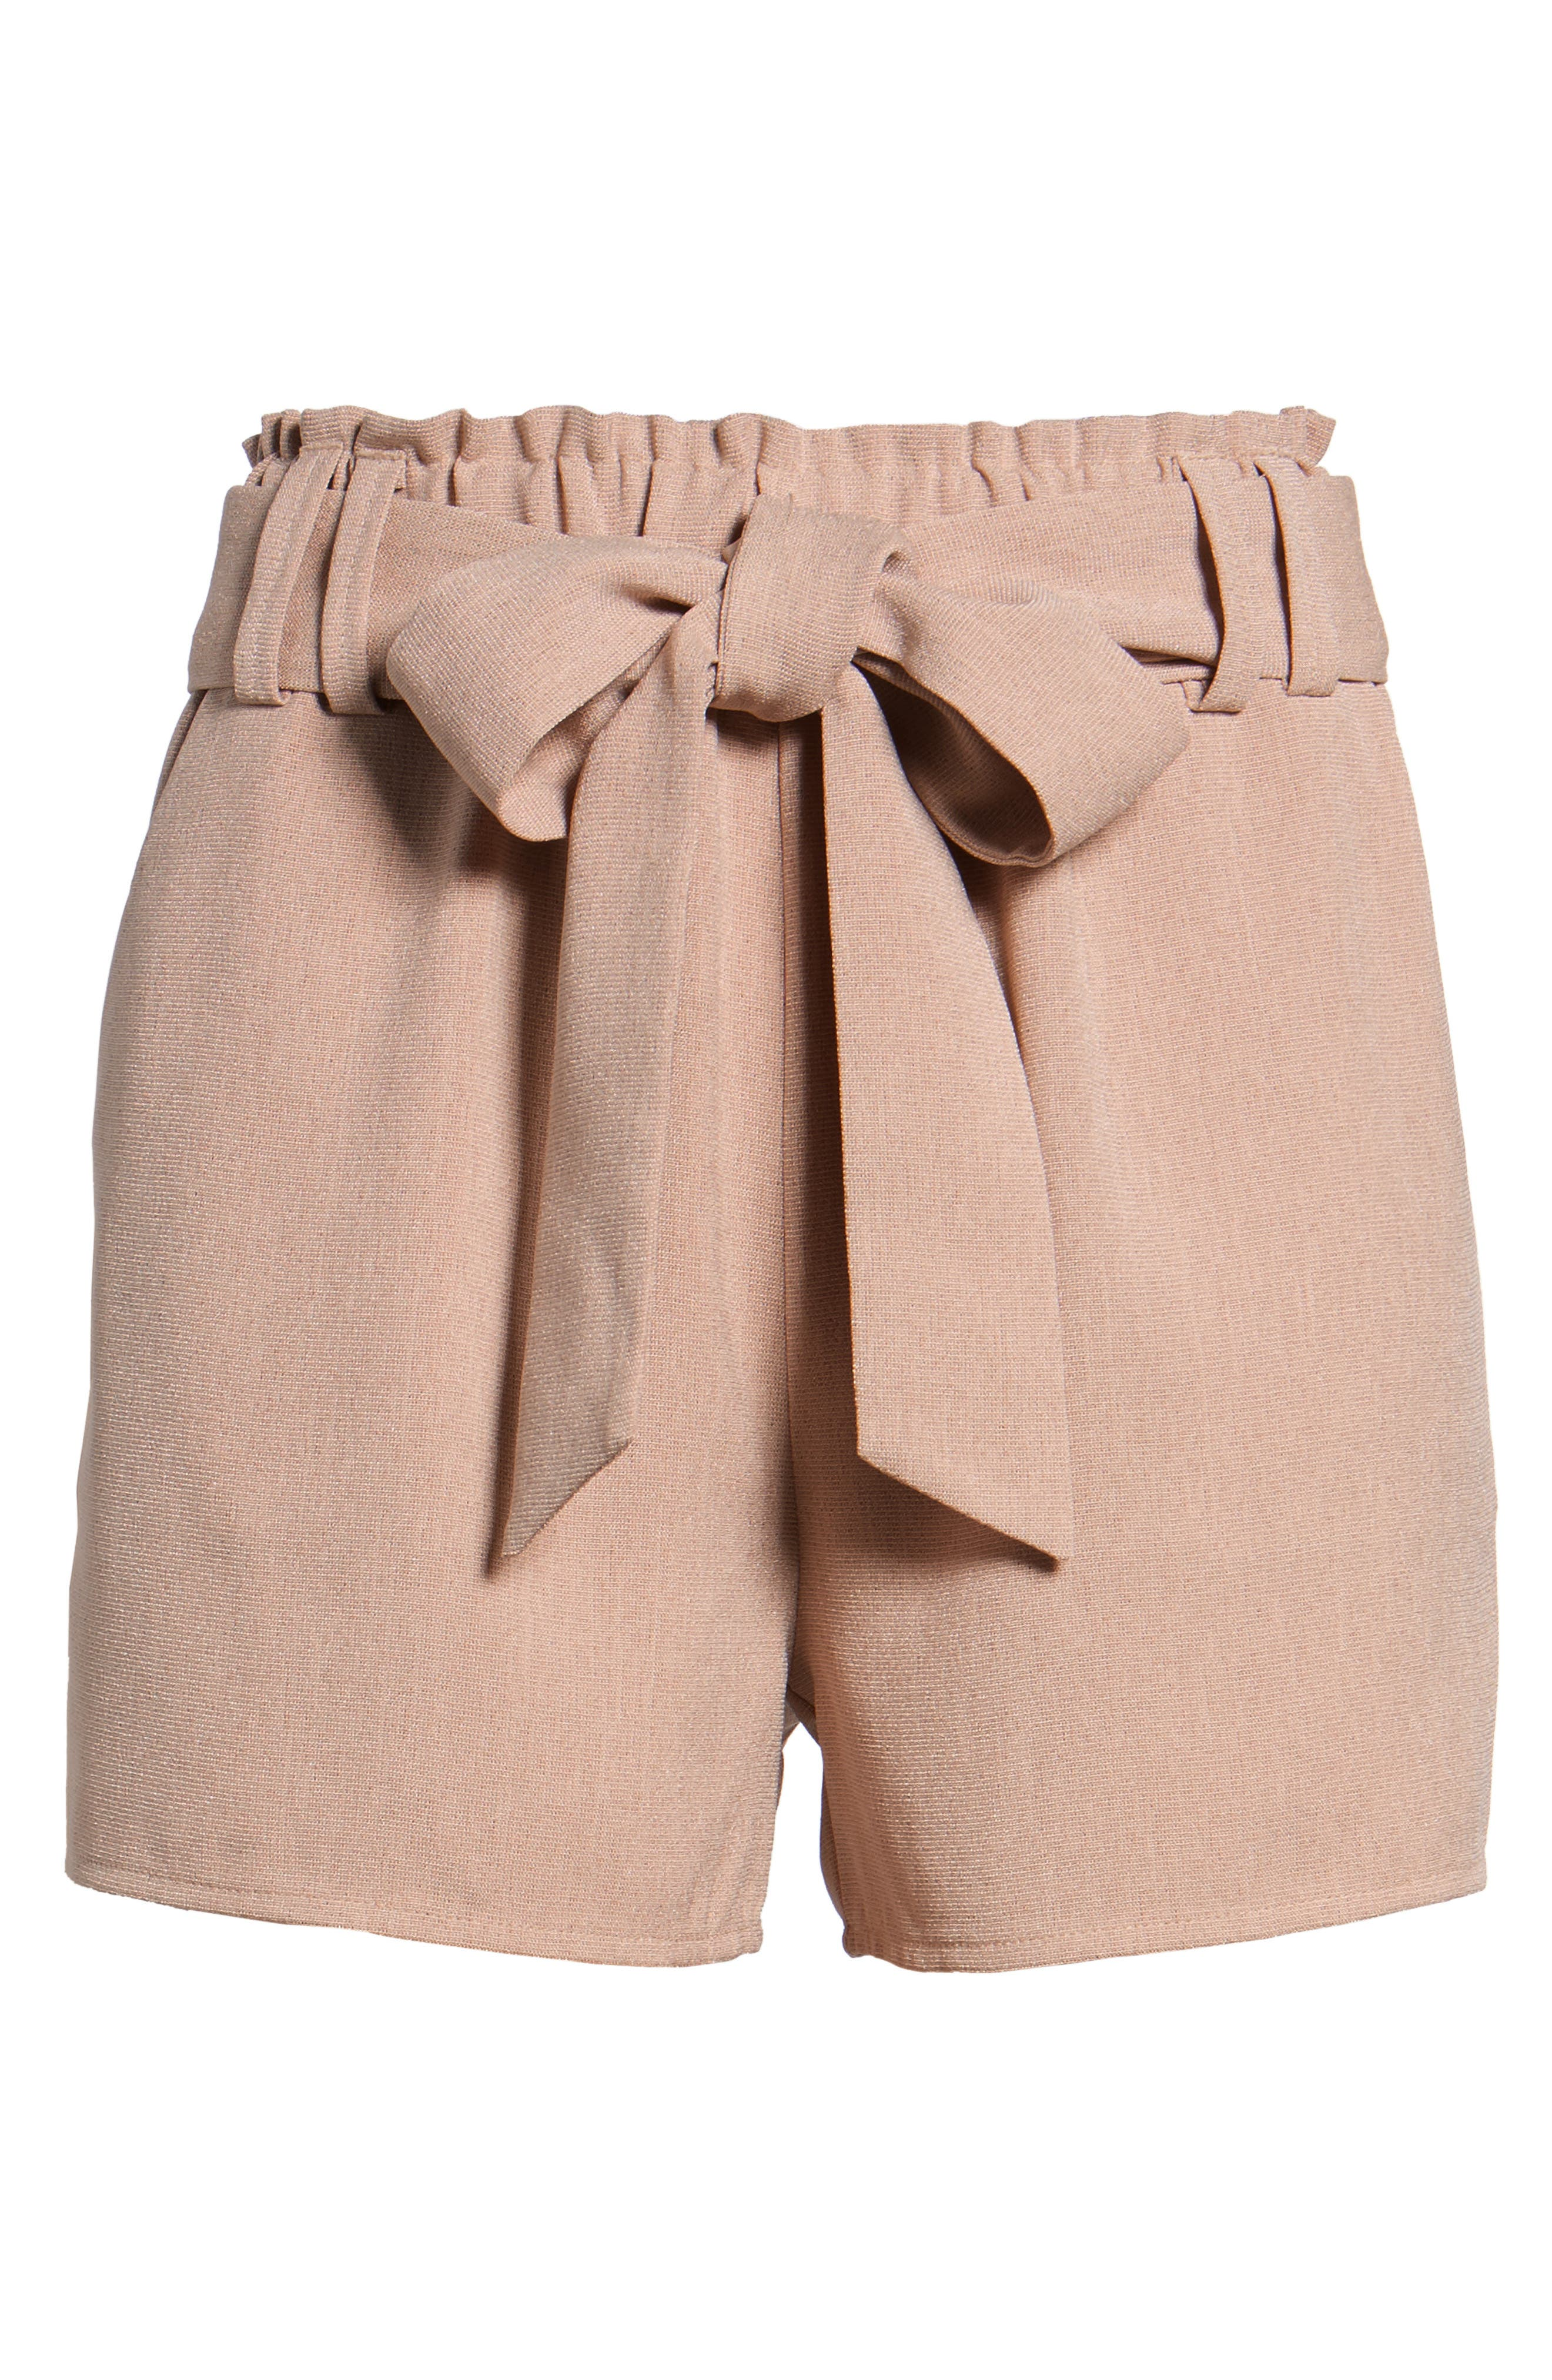 Tie Waist Shorts,                             Alternate thumbnail 6, color,                             DUSTY PINK